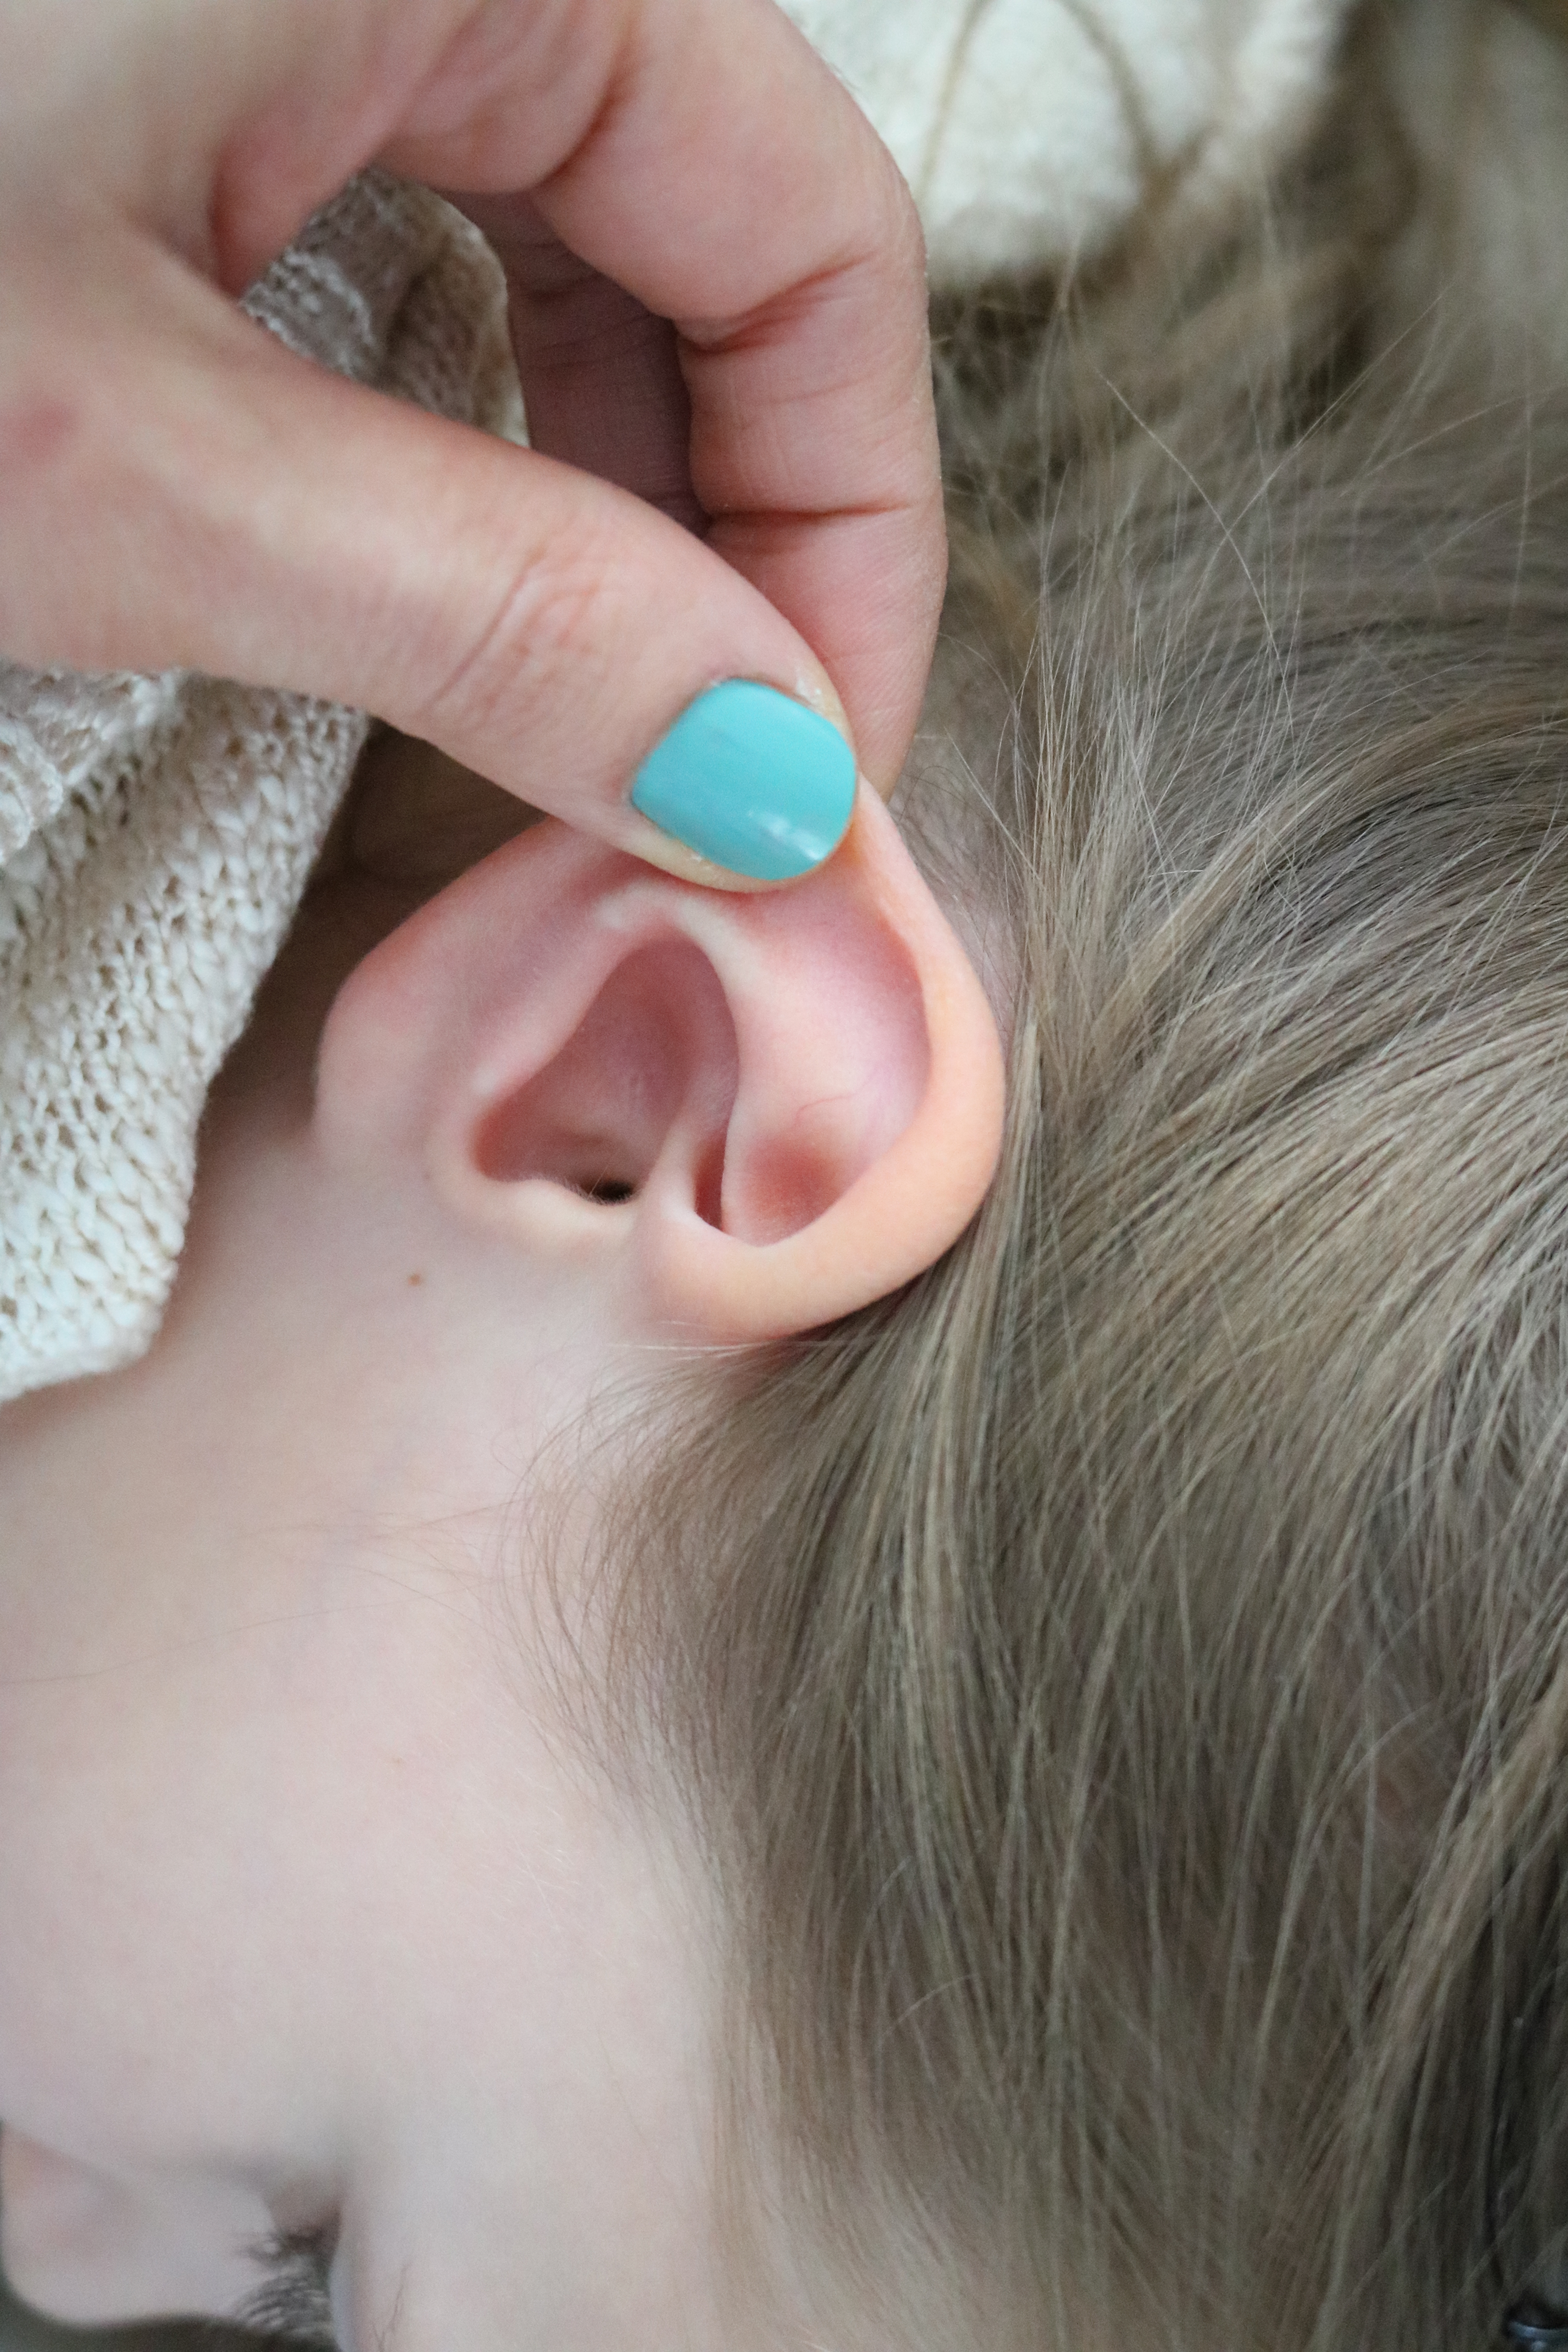 Gently pulling on the ear to check for earache and/or ear infection in infants and babies